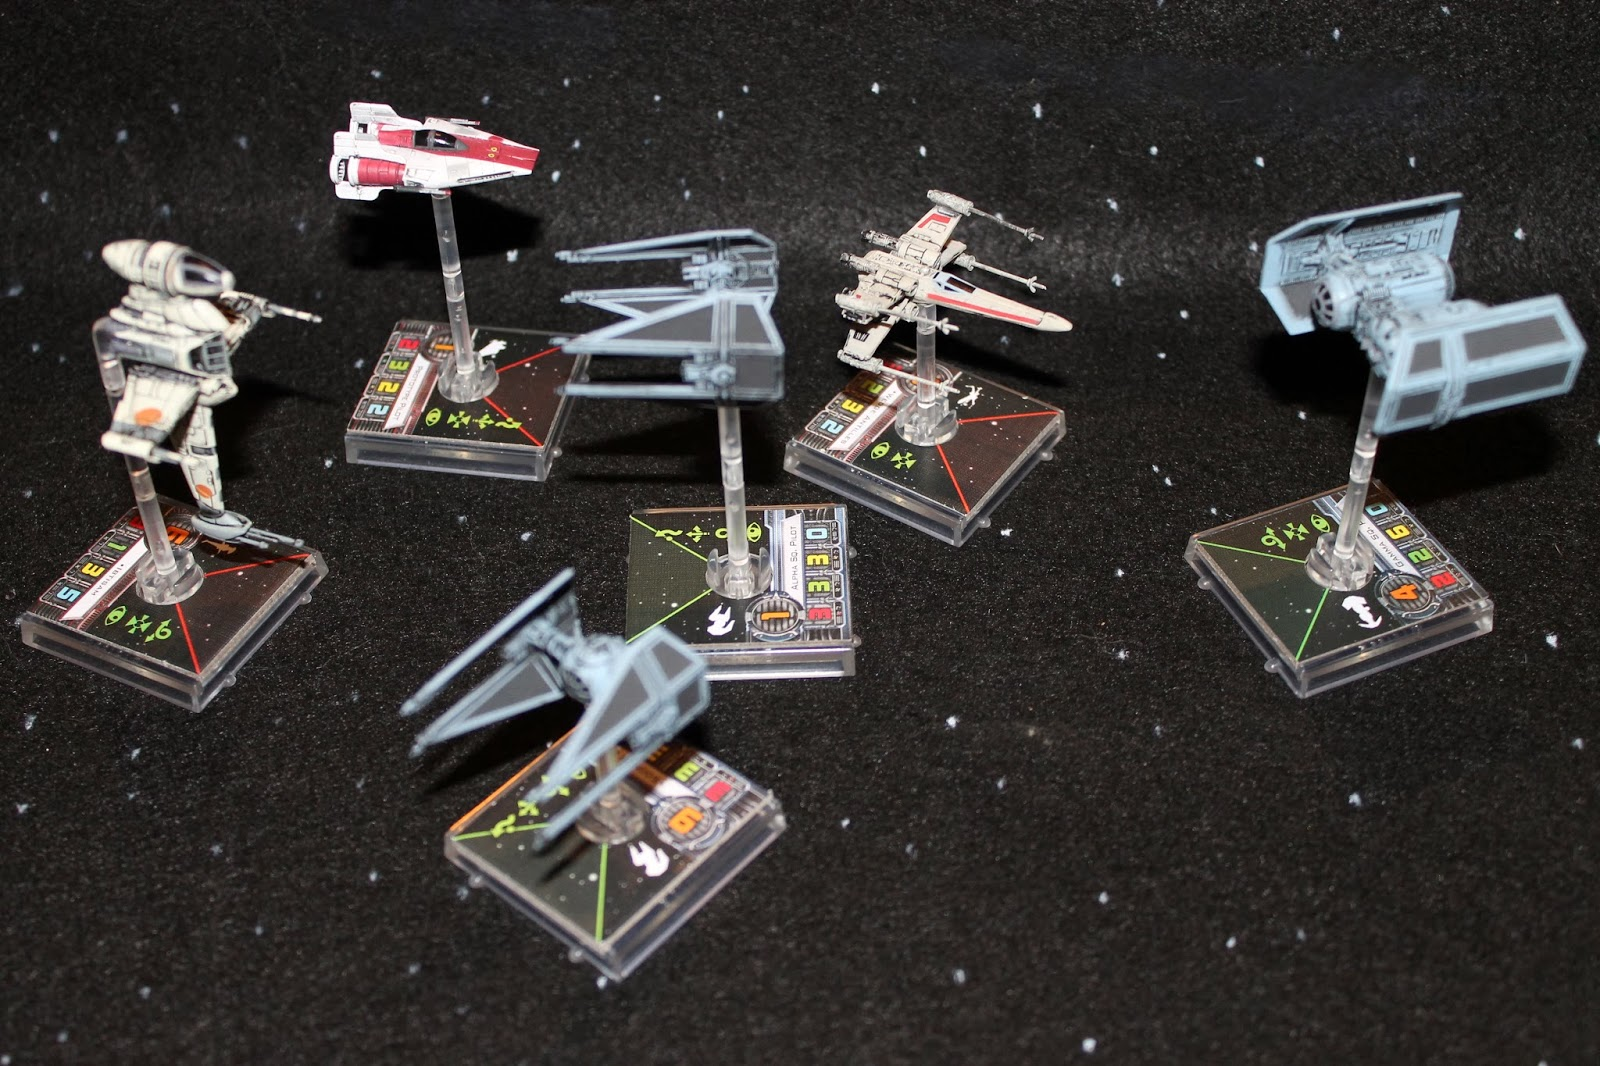 TheMetalBikini.com- X-Wing Miniatures and more: Updated! I Wanna Play X-Wing Miniatures! What ...